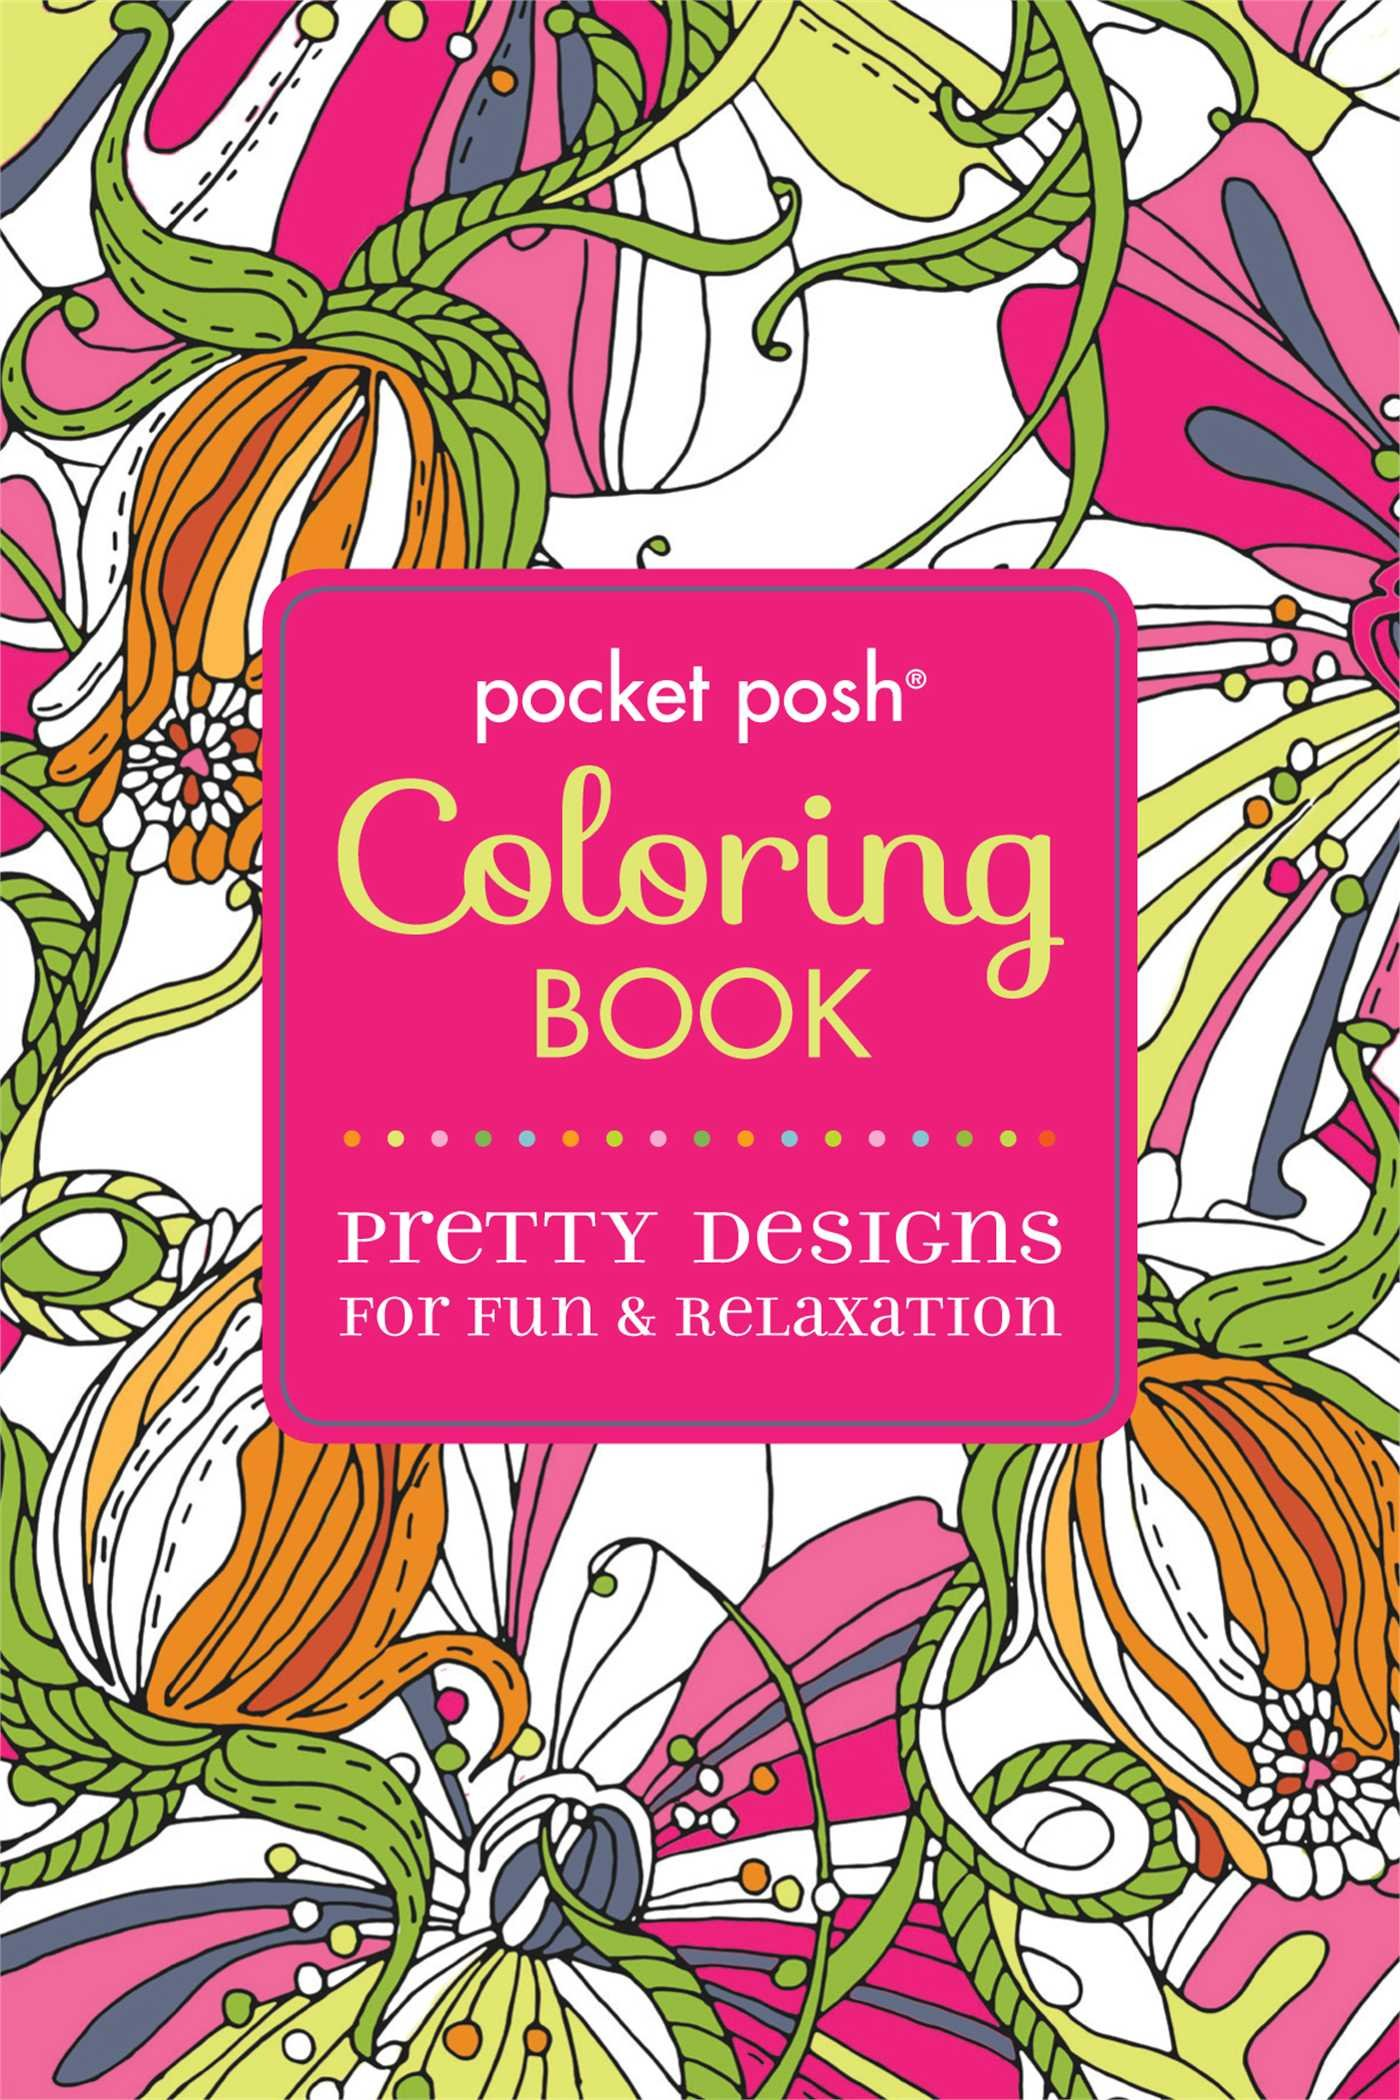 Publishers for adult coloring books - Amazon Com Pocket Posh Adult Coloring Book Pretty Designs For Fun Relaxation Pocket Posh Coloring Books 9781449458720 Andrews Mcmeel Publishing